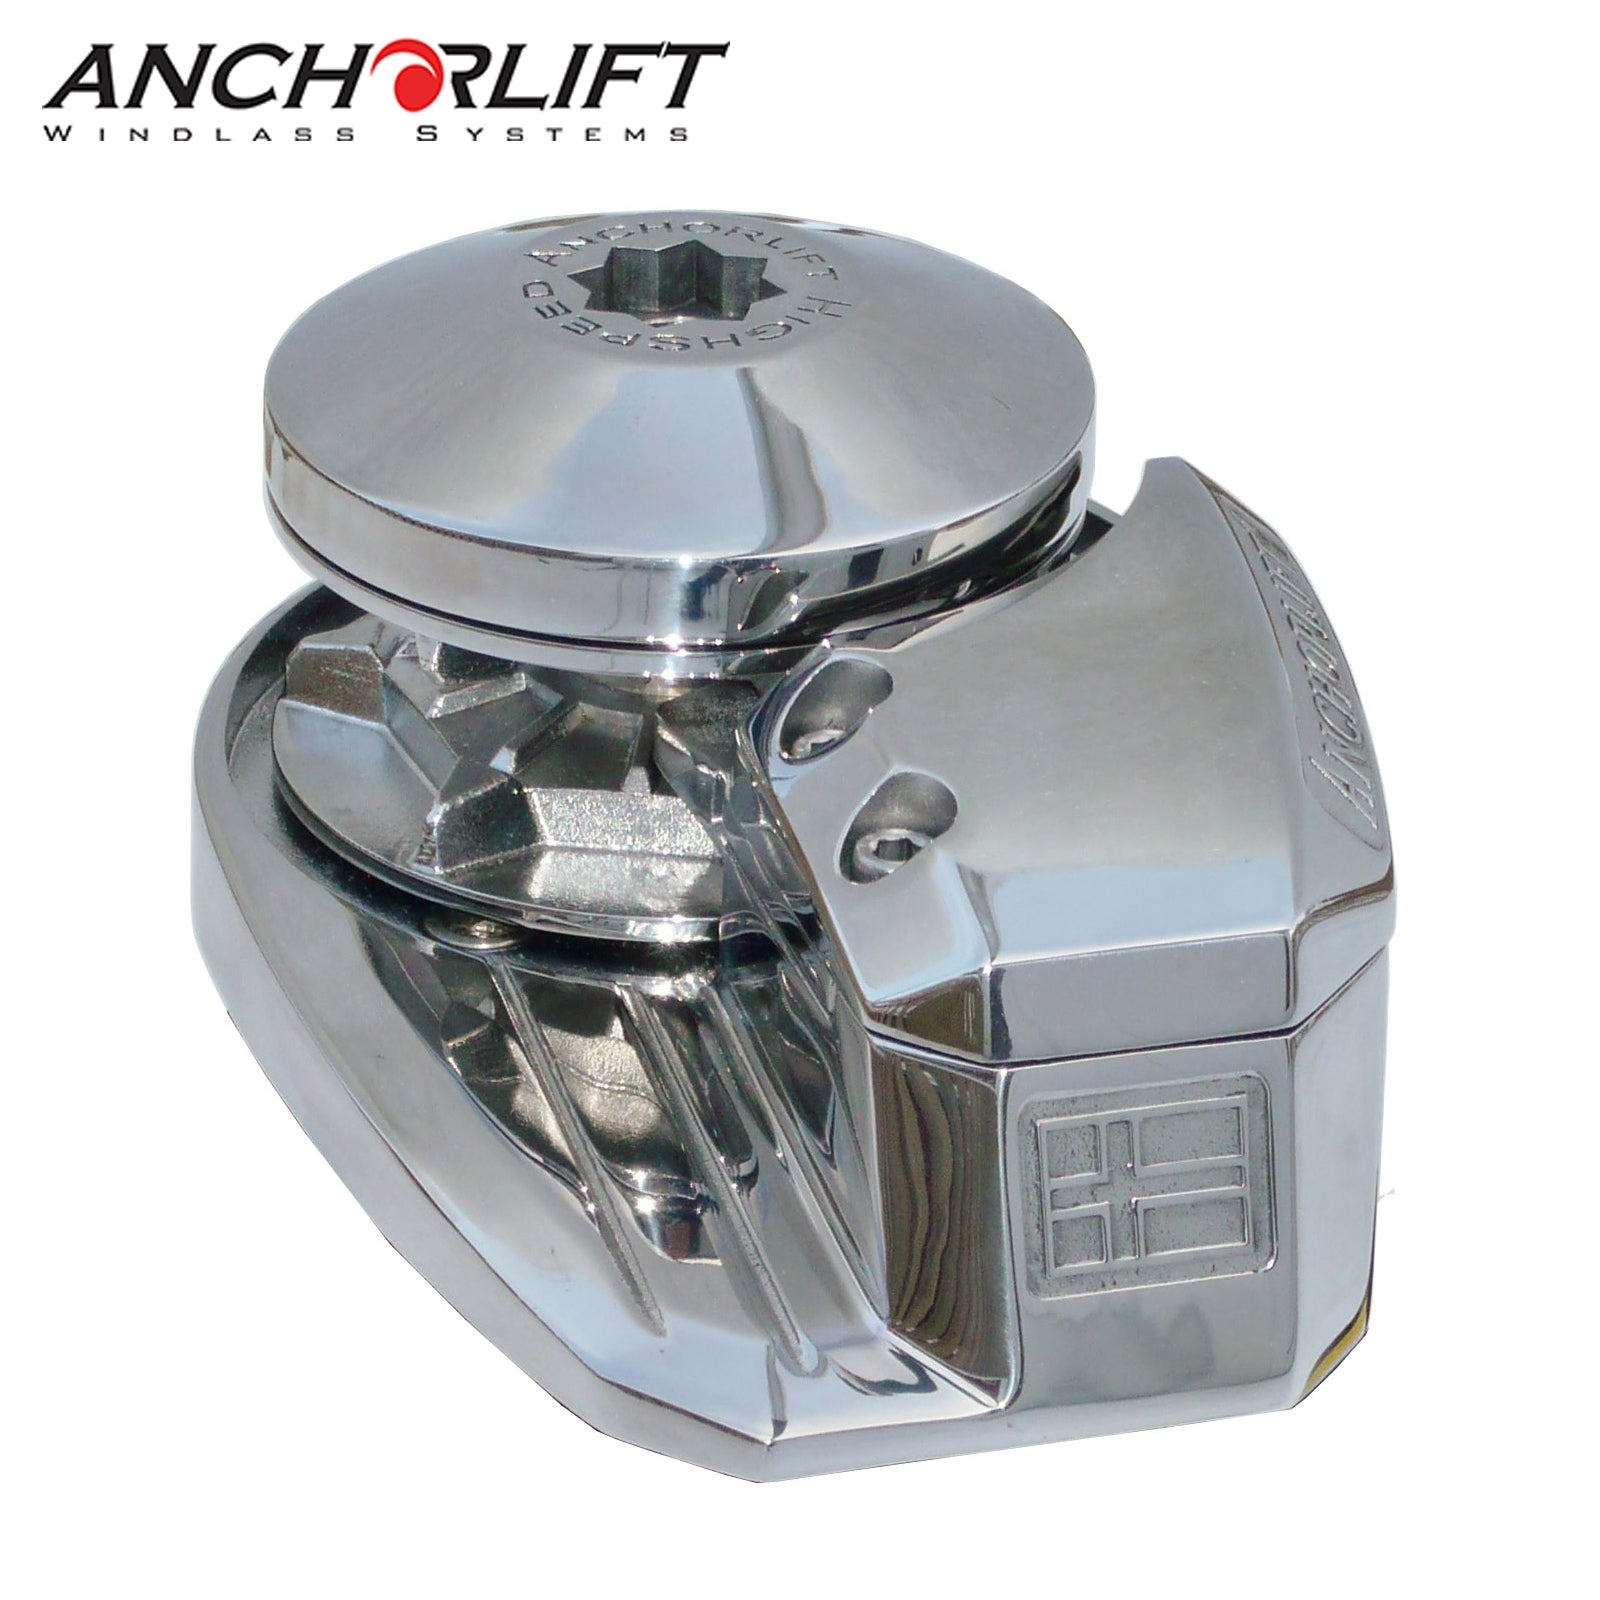 AnchorLift Barracuda Windlass